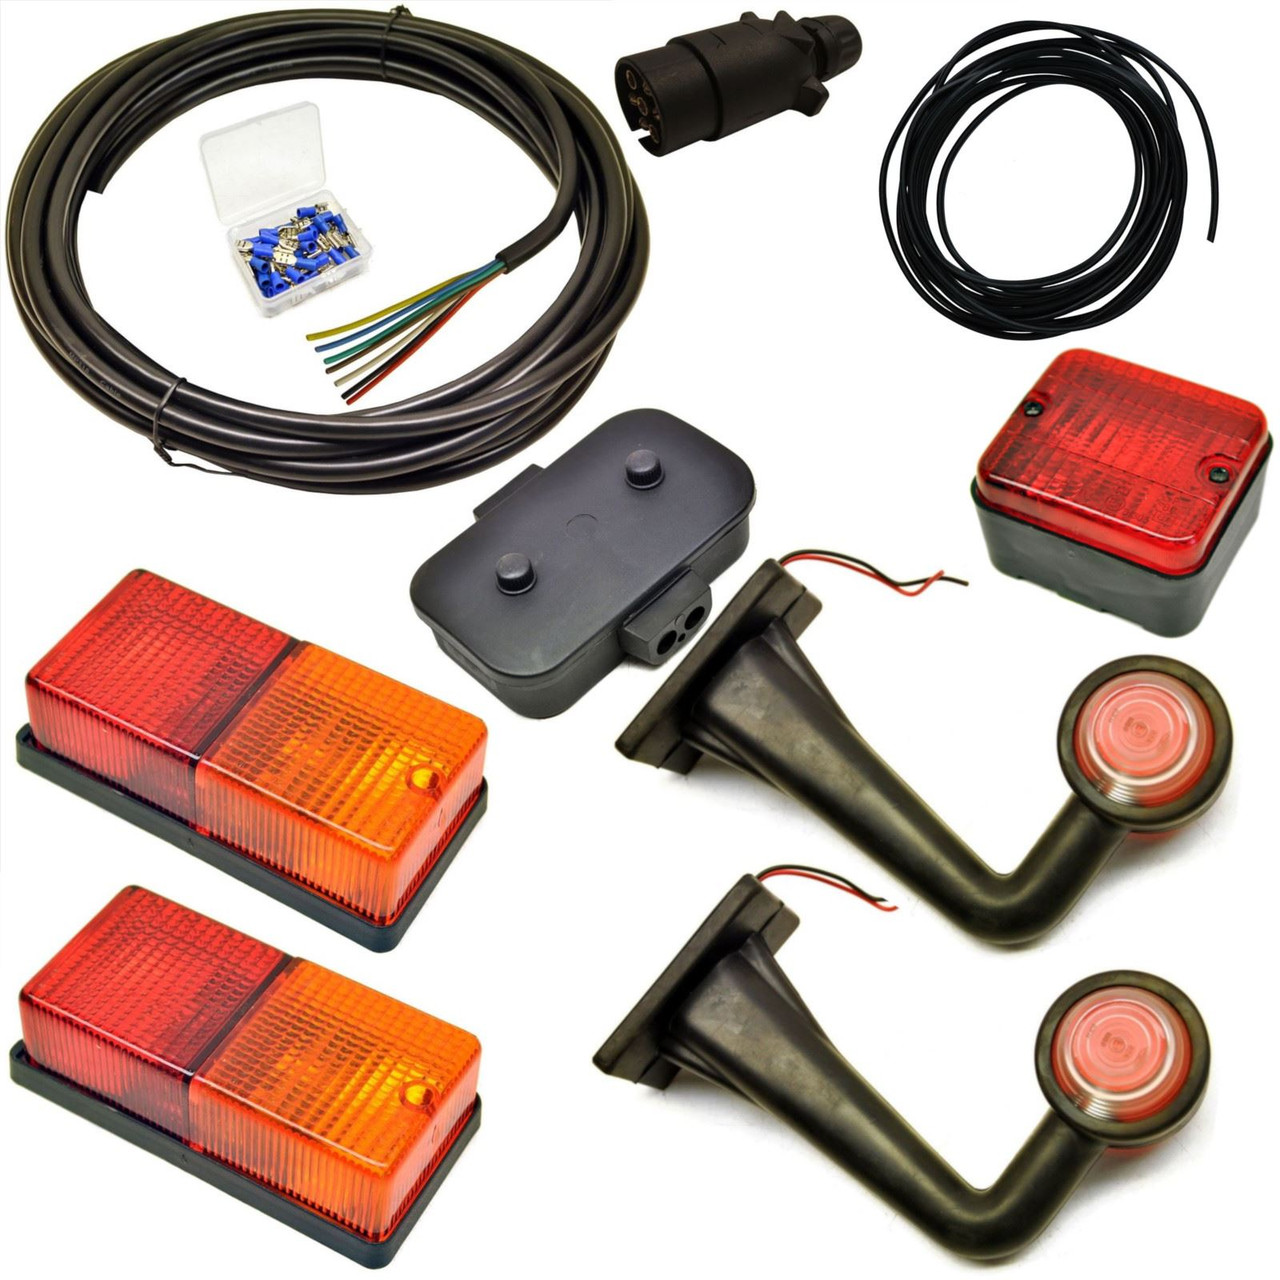 hight resolution of 10m trailer light wiring kit rear lights side front marker plug junction box ab tools online